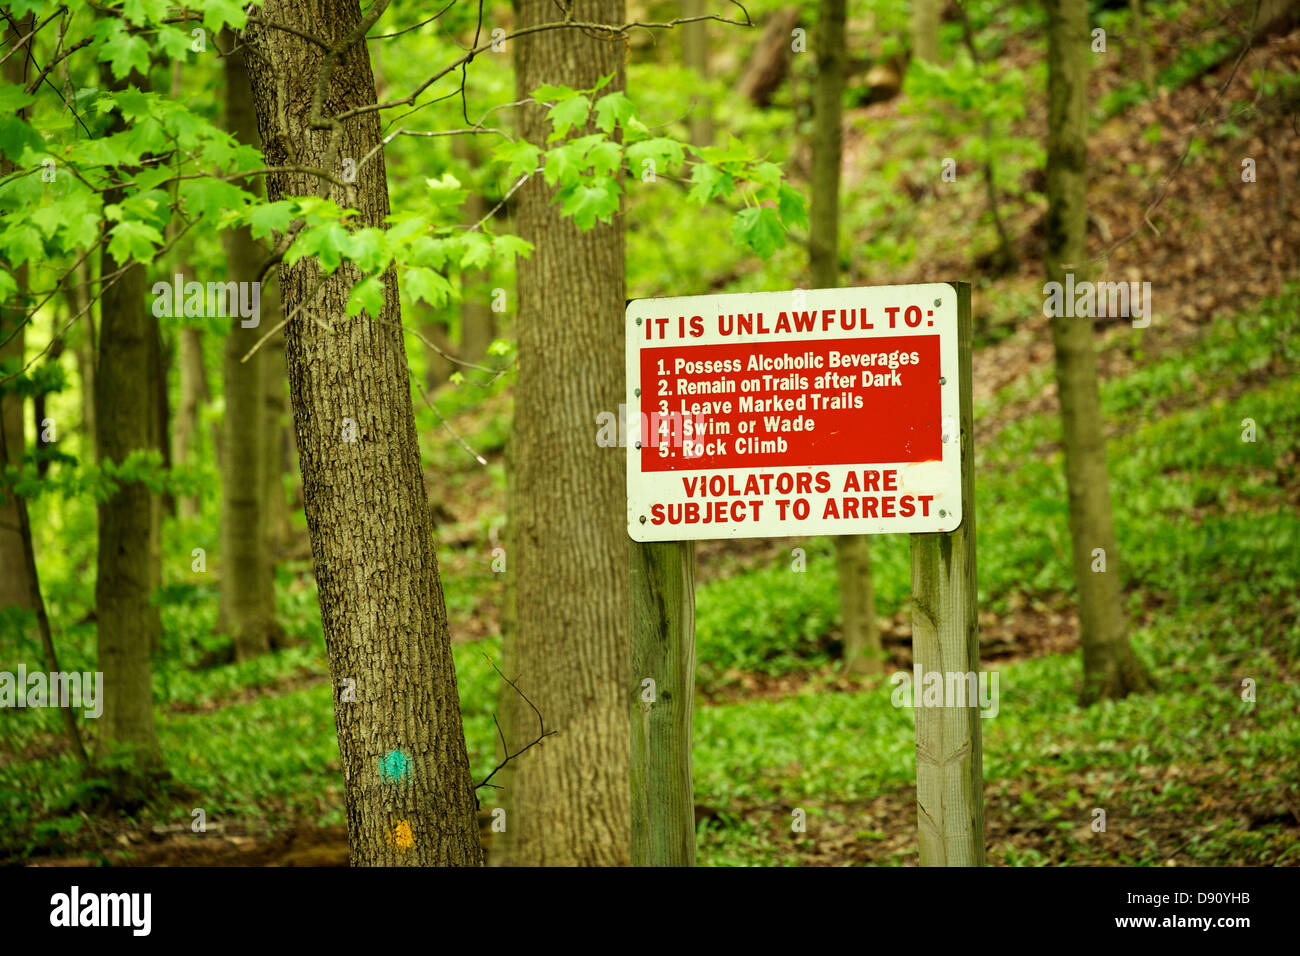 Warning sign. Illinois Canyon, Starved Rock State Park Illinois. - Stock Image